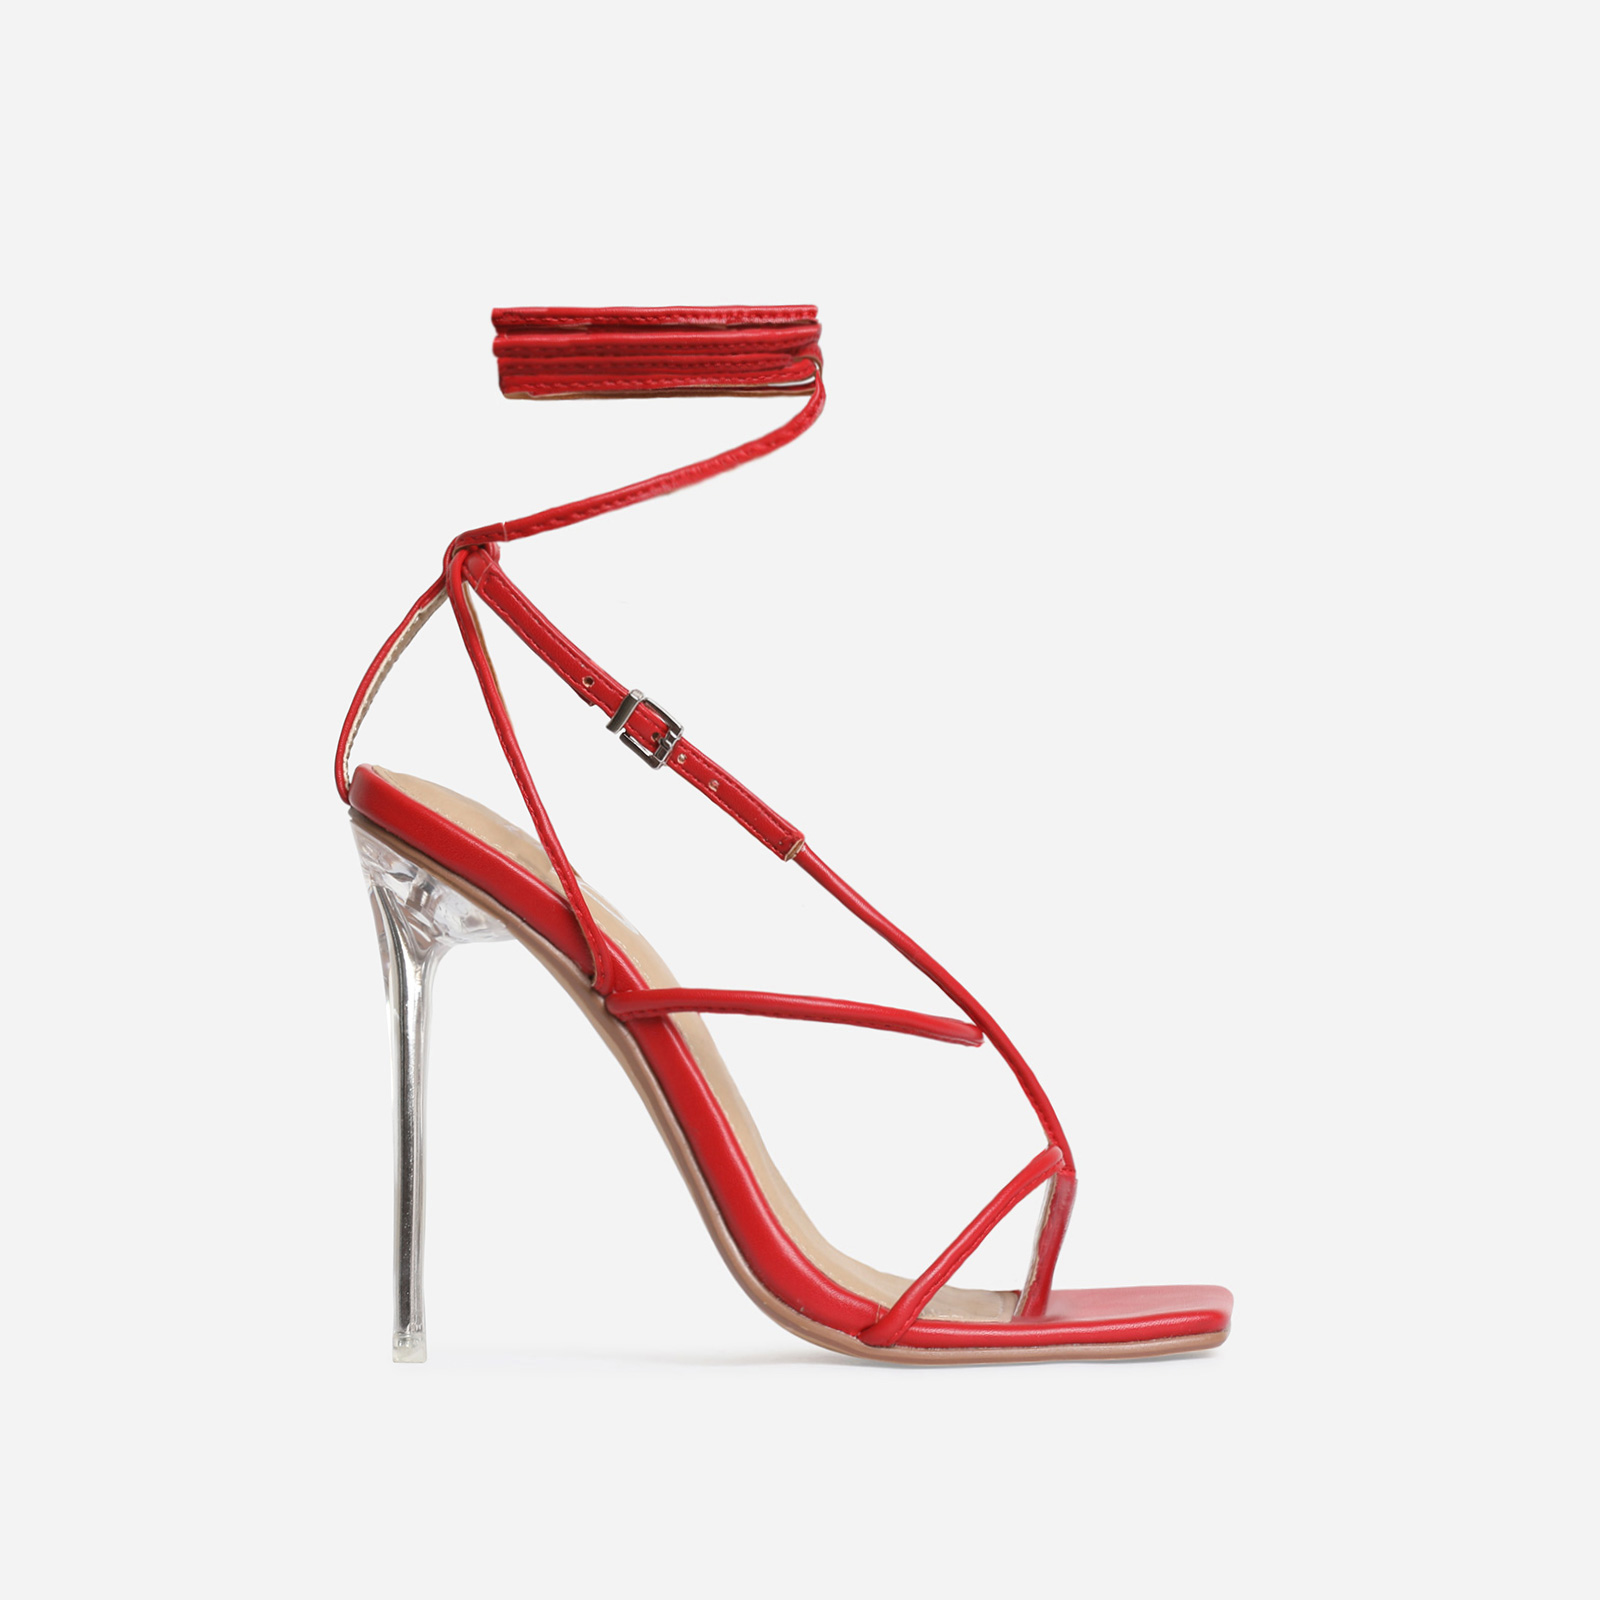 True Square Toe Lace Up Clear Perspex Heel In Red Faux Leather